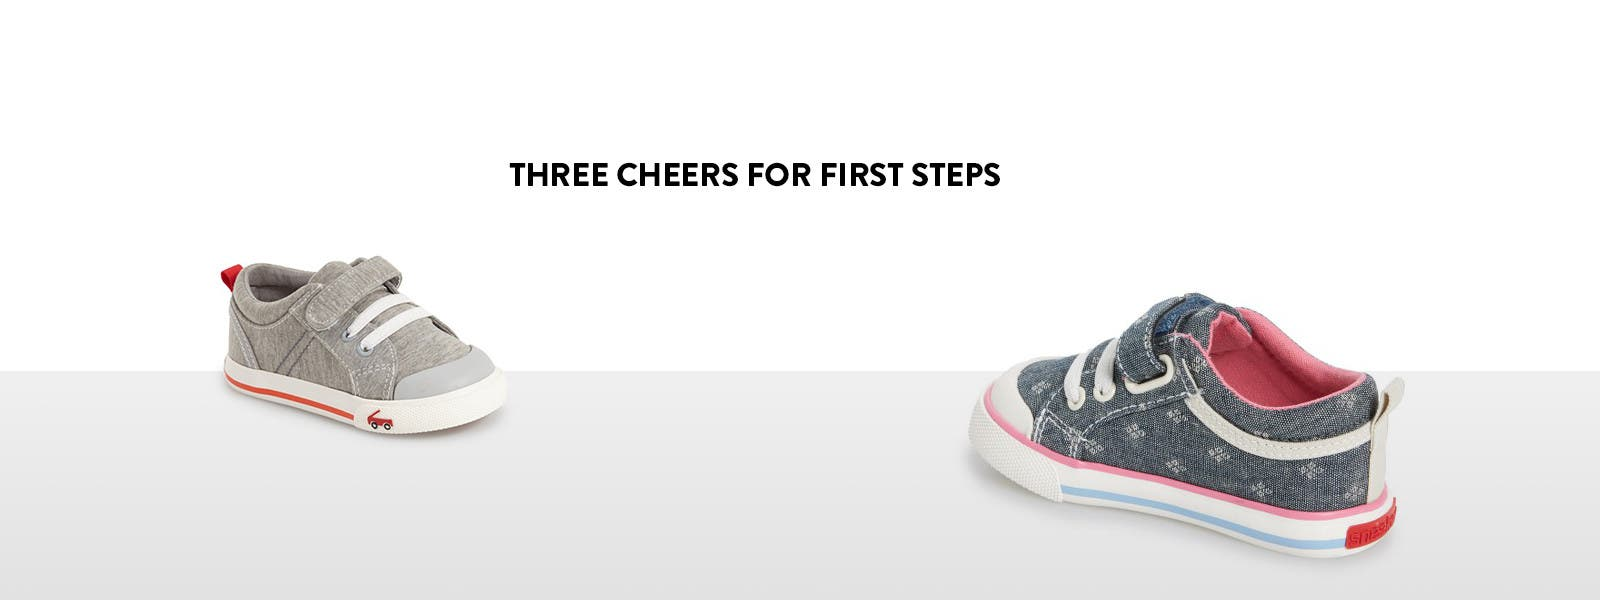 Three cheers for first steps and first walker shoes for your little ones.